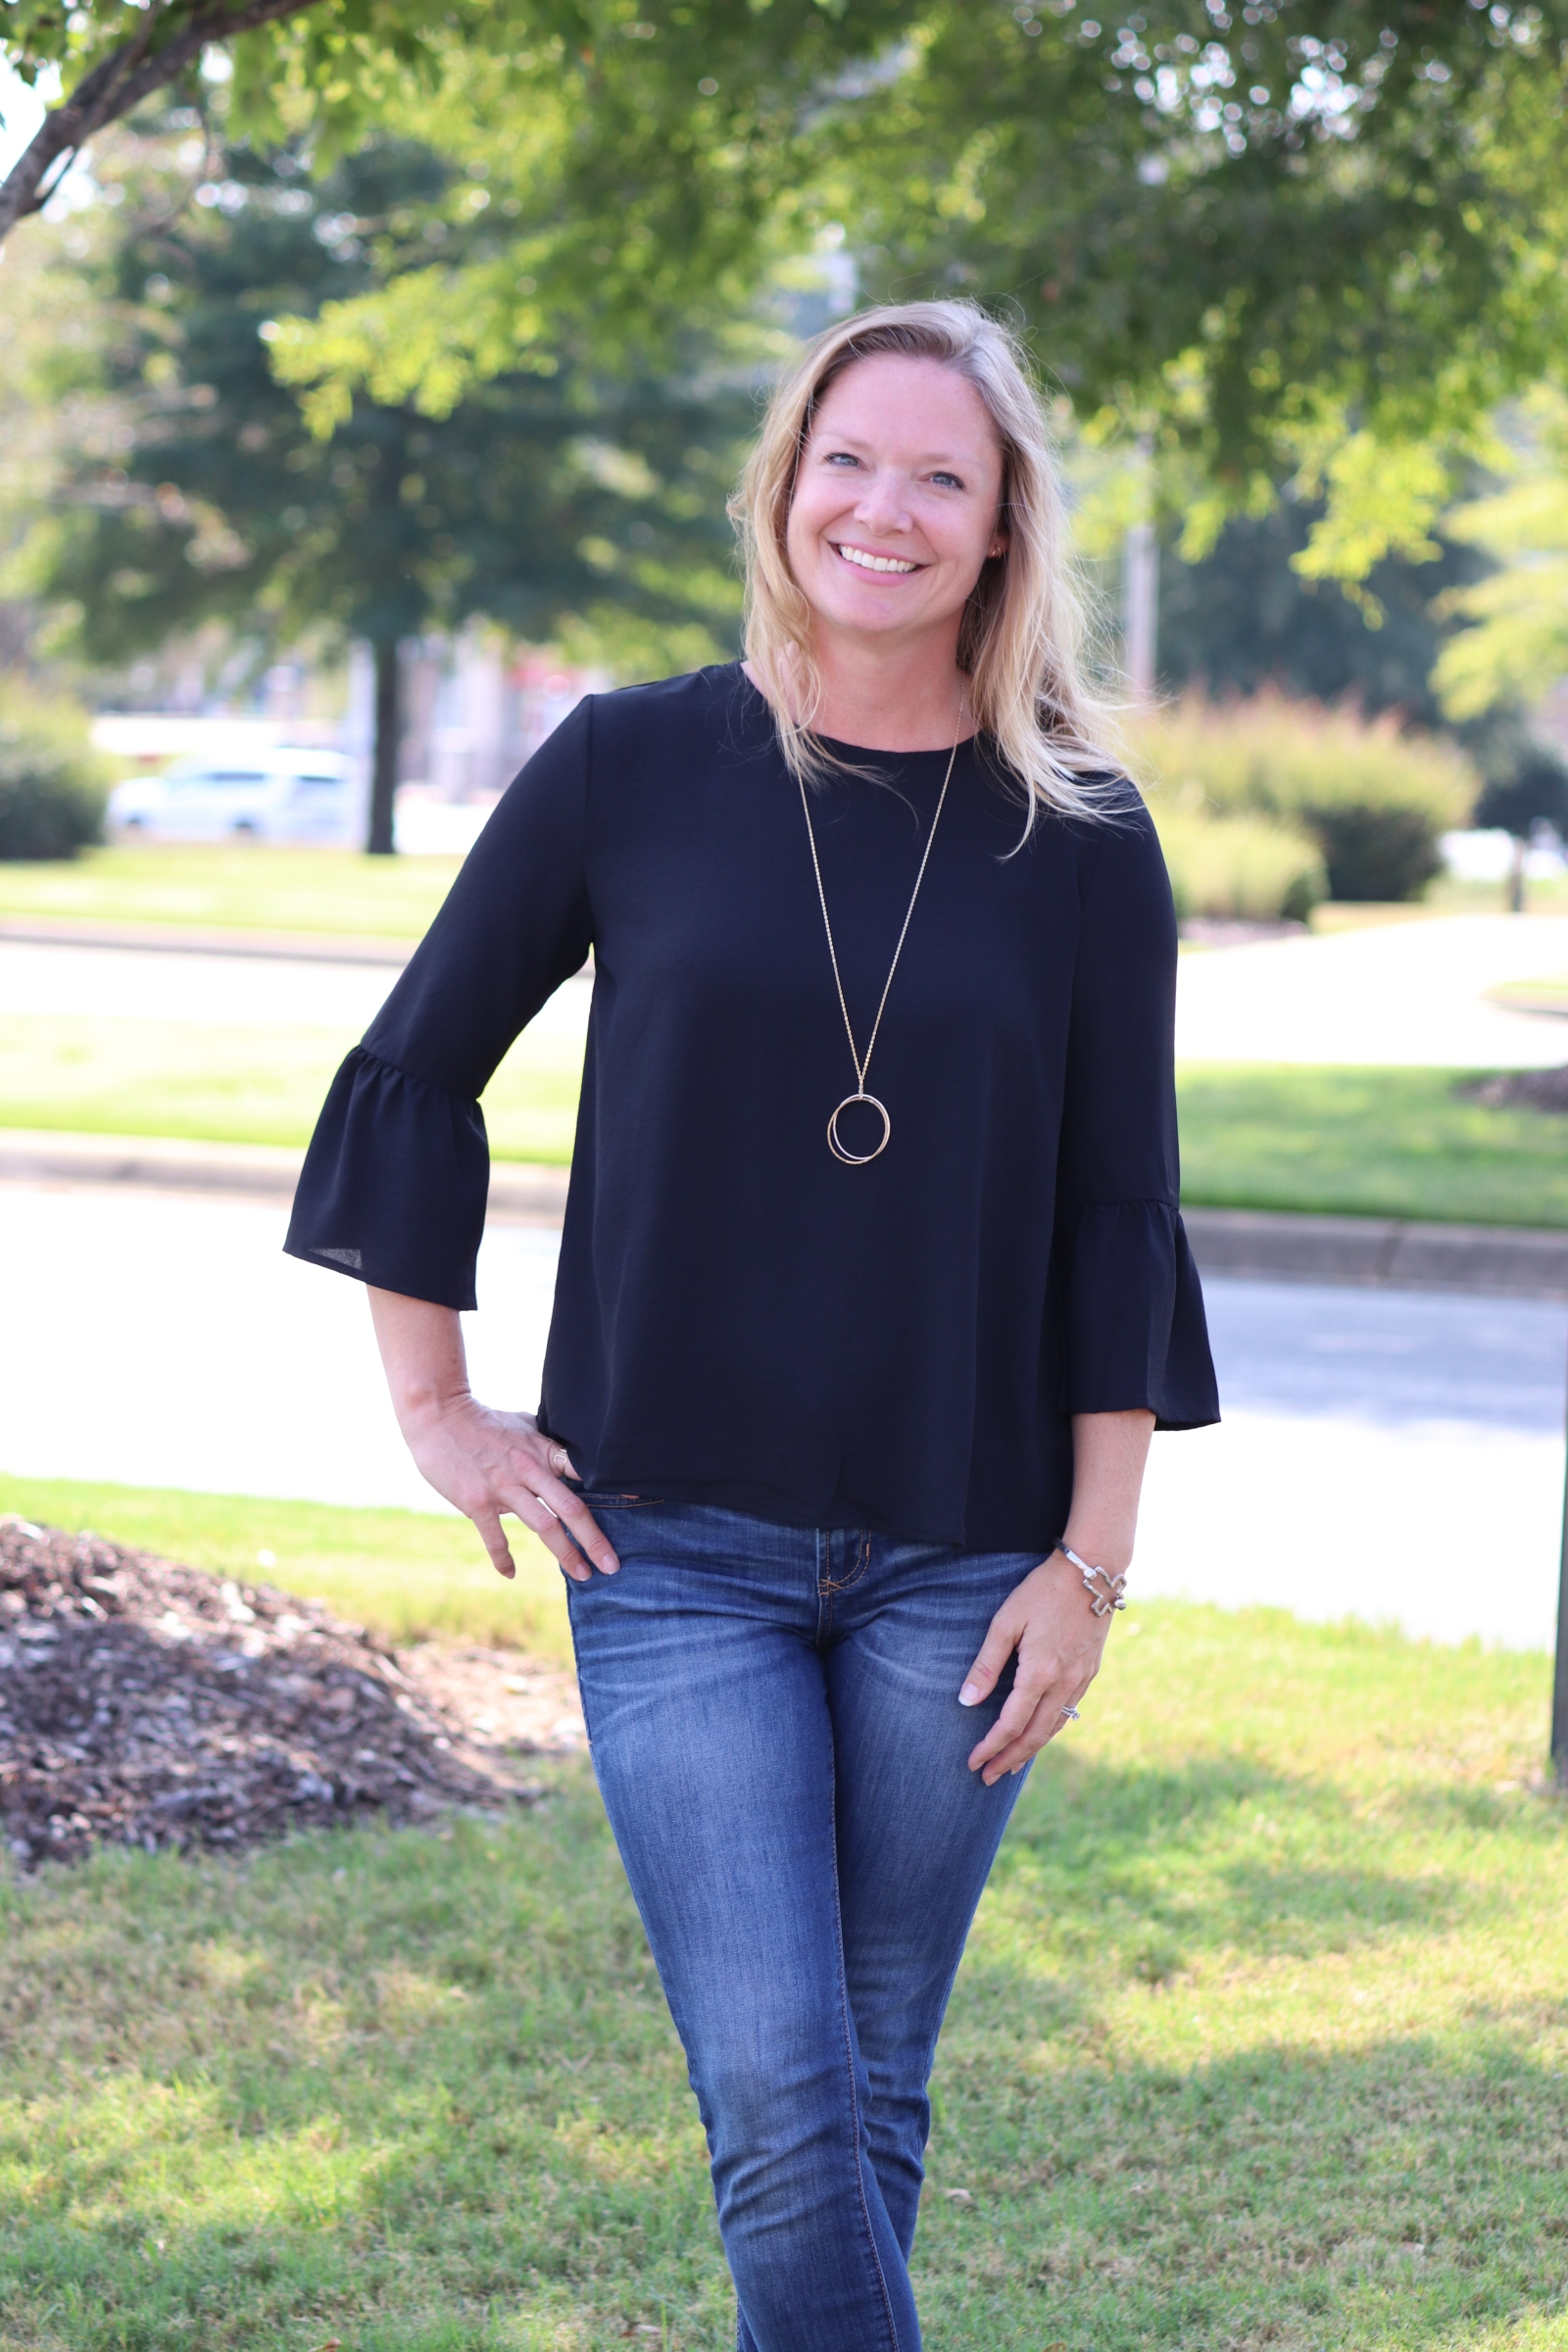 Kristin has on our classic black bell sleeve top. We also have this available in crimson and both colors are perfect for gameday or holiday festivities! We love how she paired it with a long ABLE necklace. They make great gifts too!